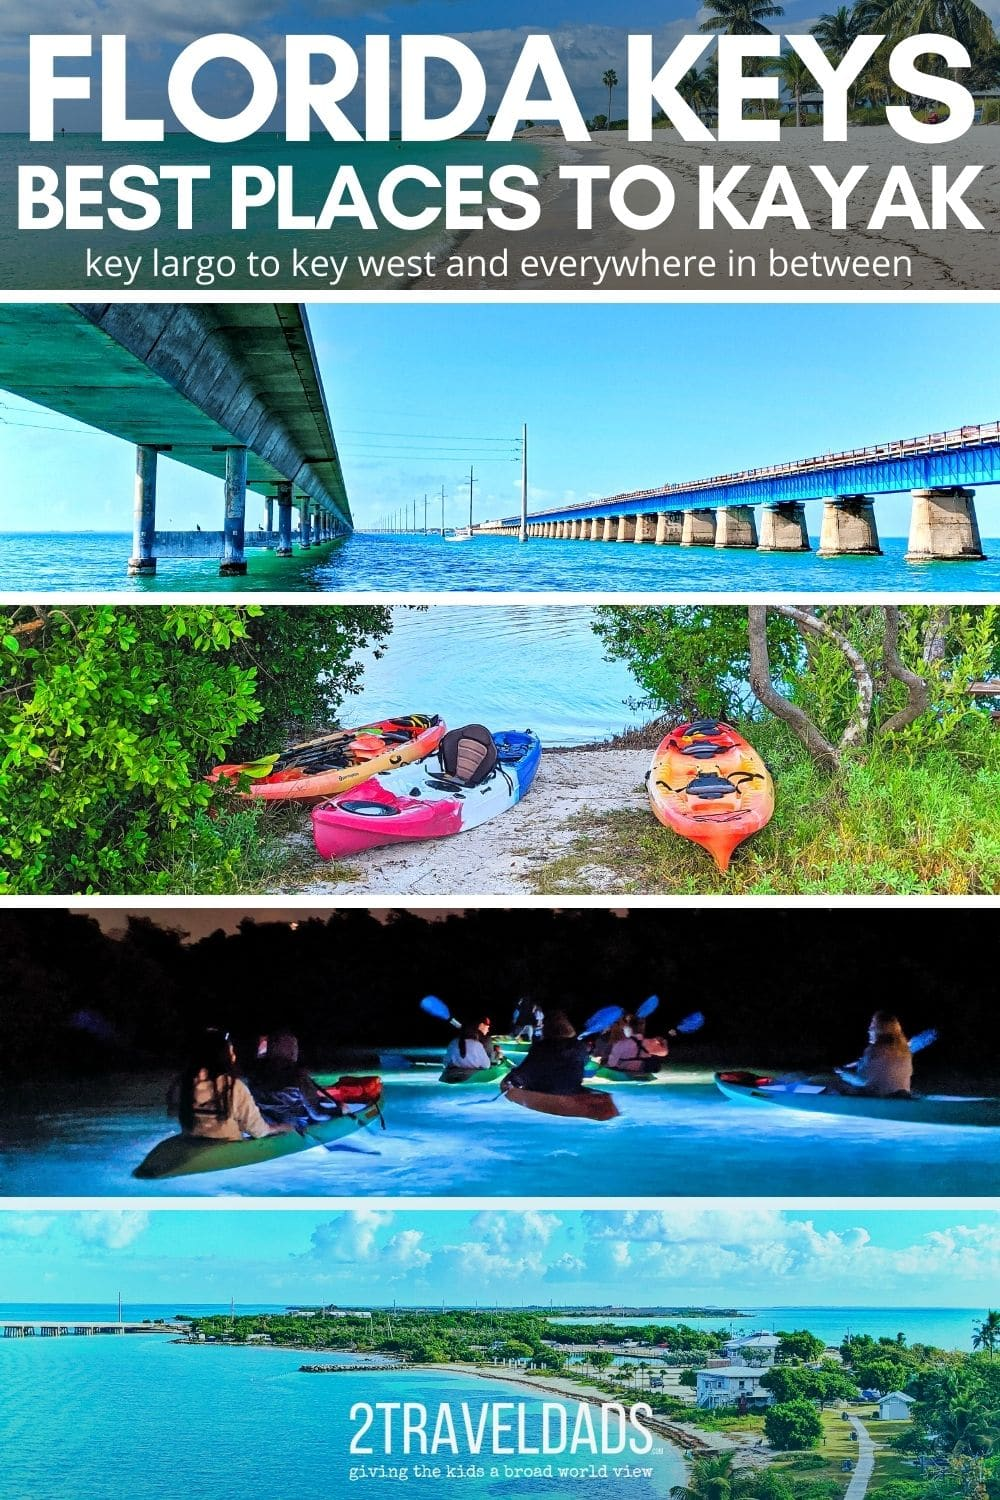 The best places to kayak in the Florida Keys range from Key West to the backcountry of the smaller keys. Kayaking routes and guided tours in the Florida Keys to make a road trip on the Overseas Highway even better.